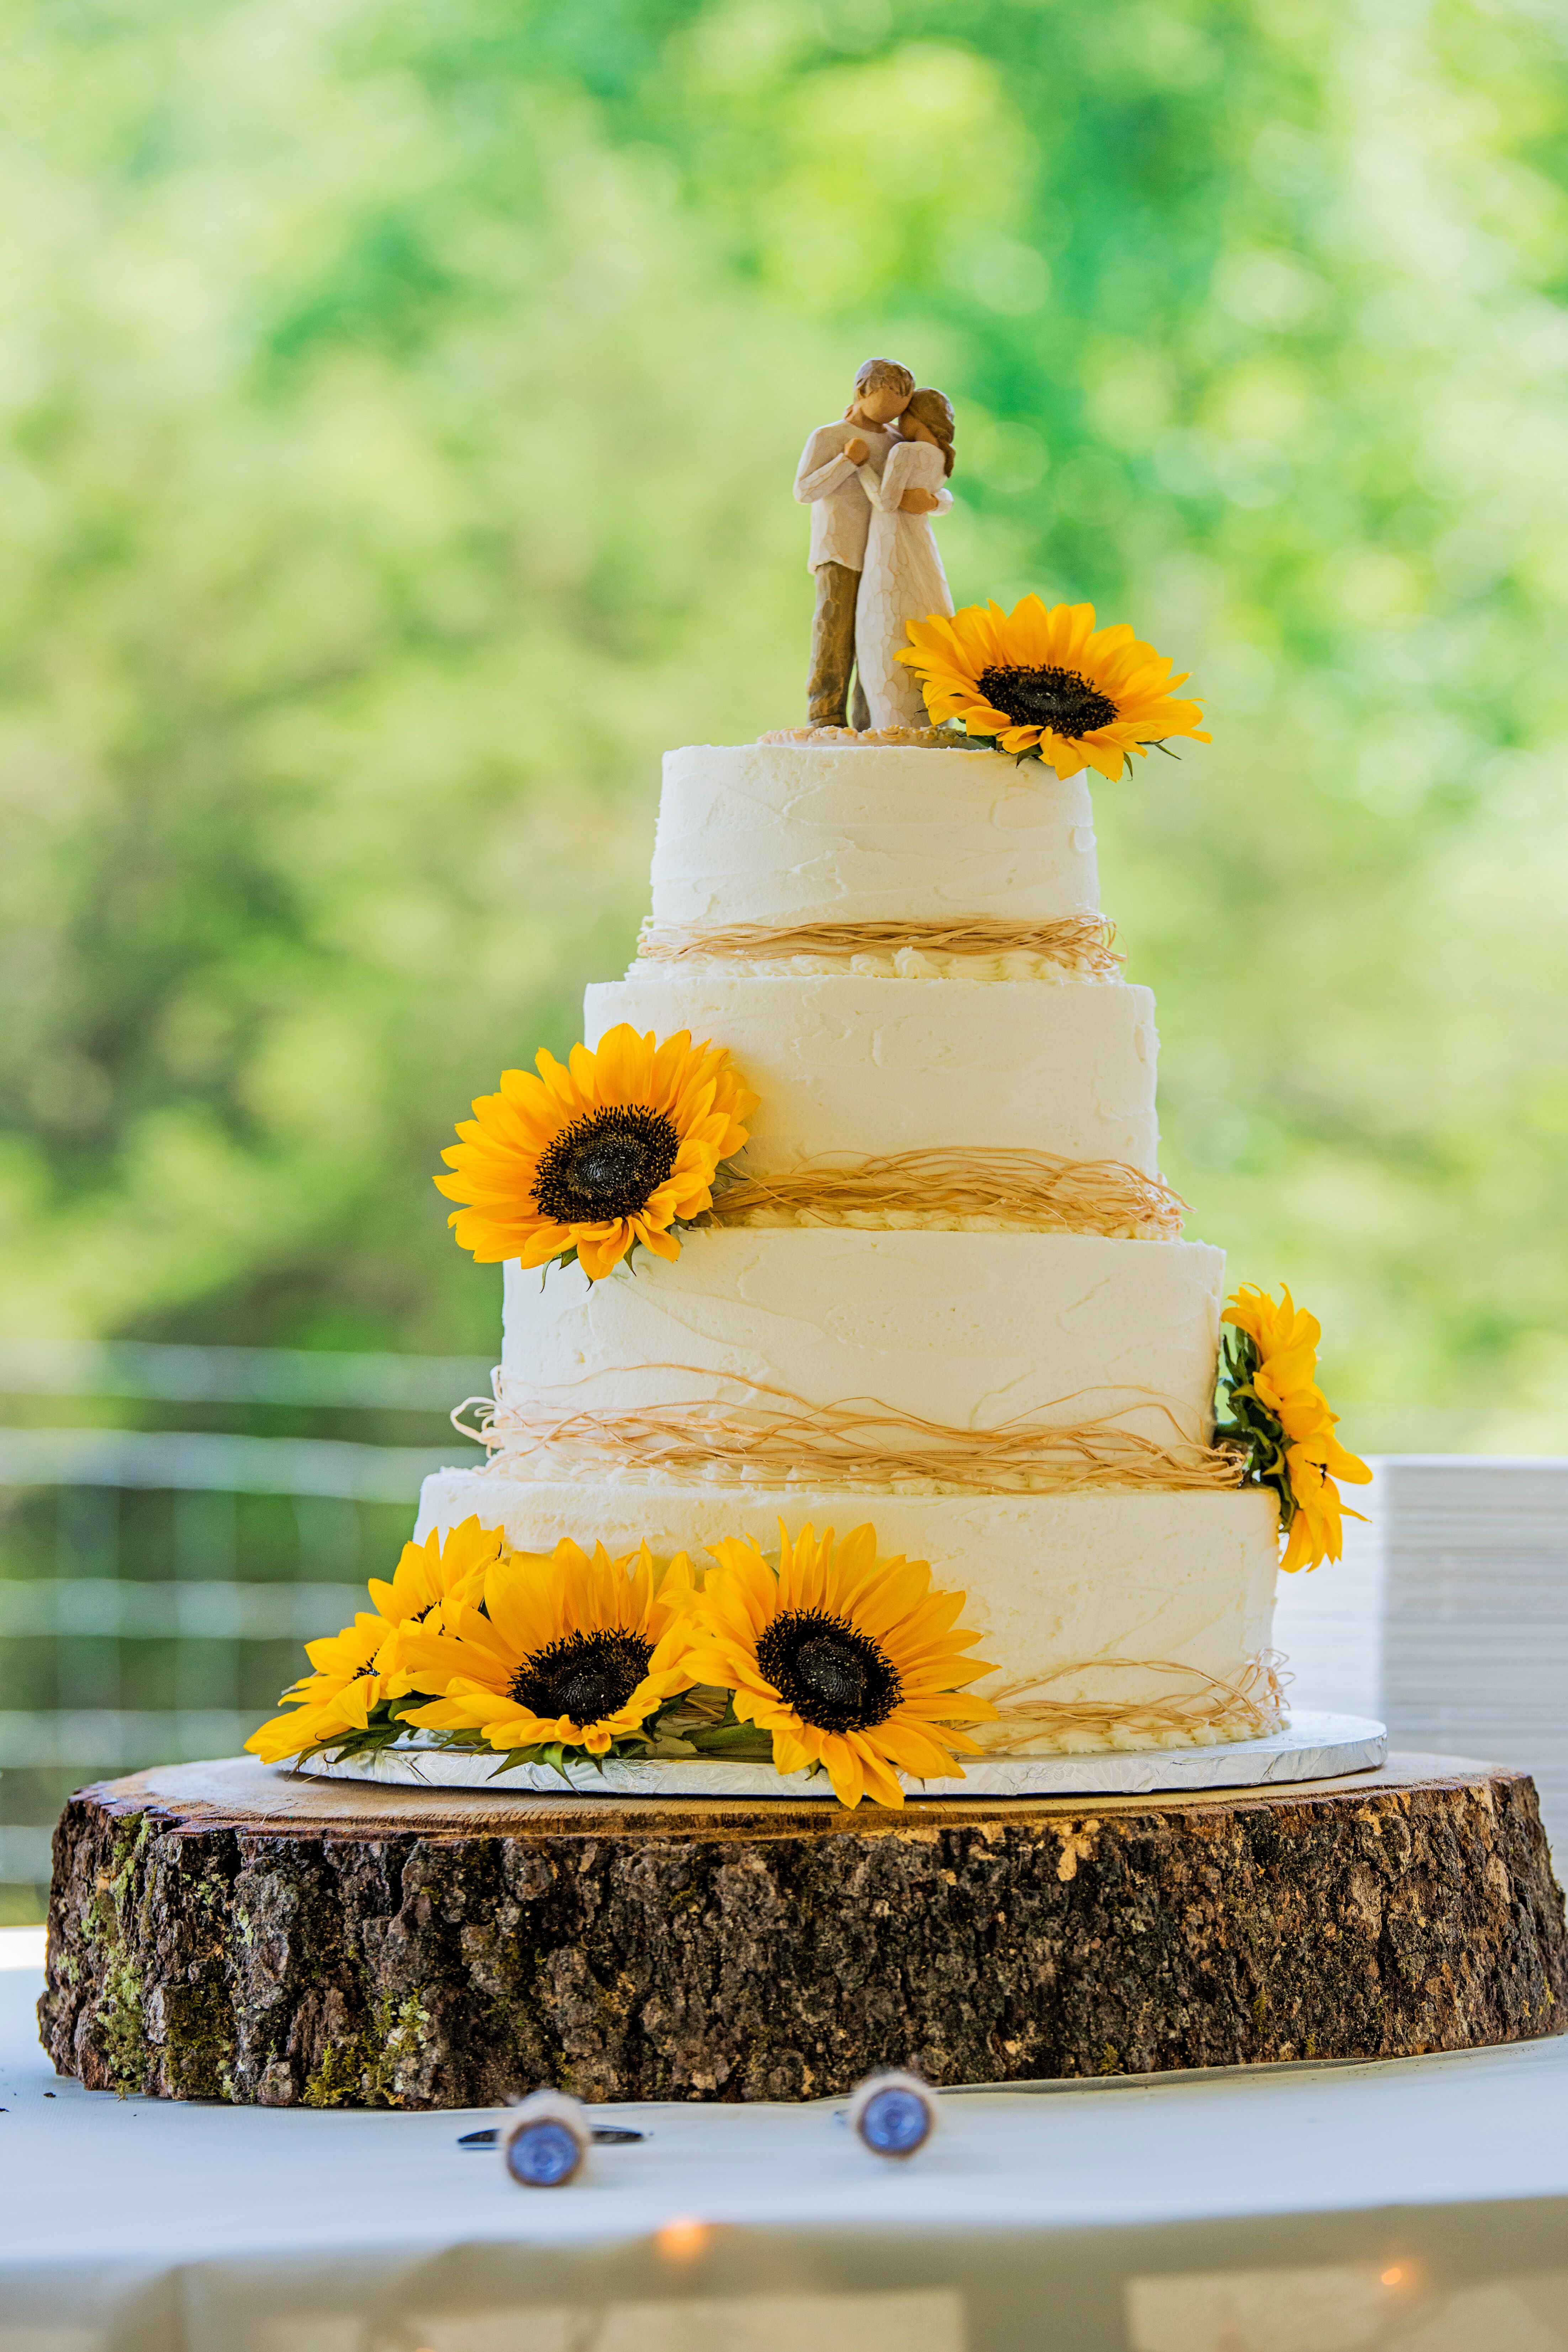 Wedding Cake Bakeries in Lynchburg, VA - The Knot